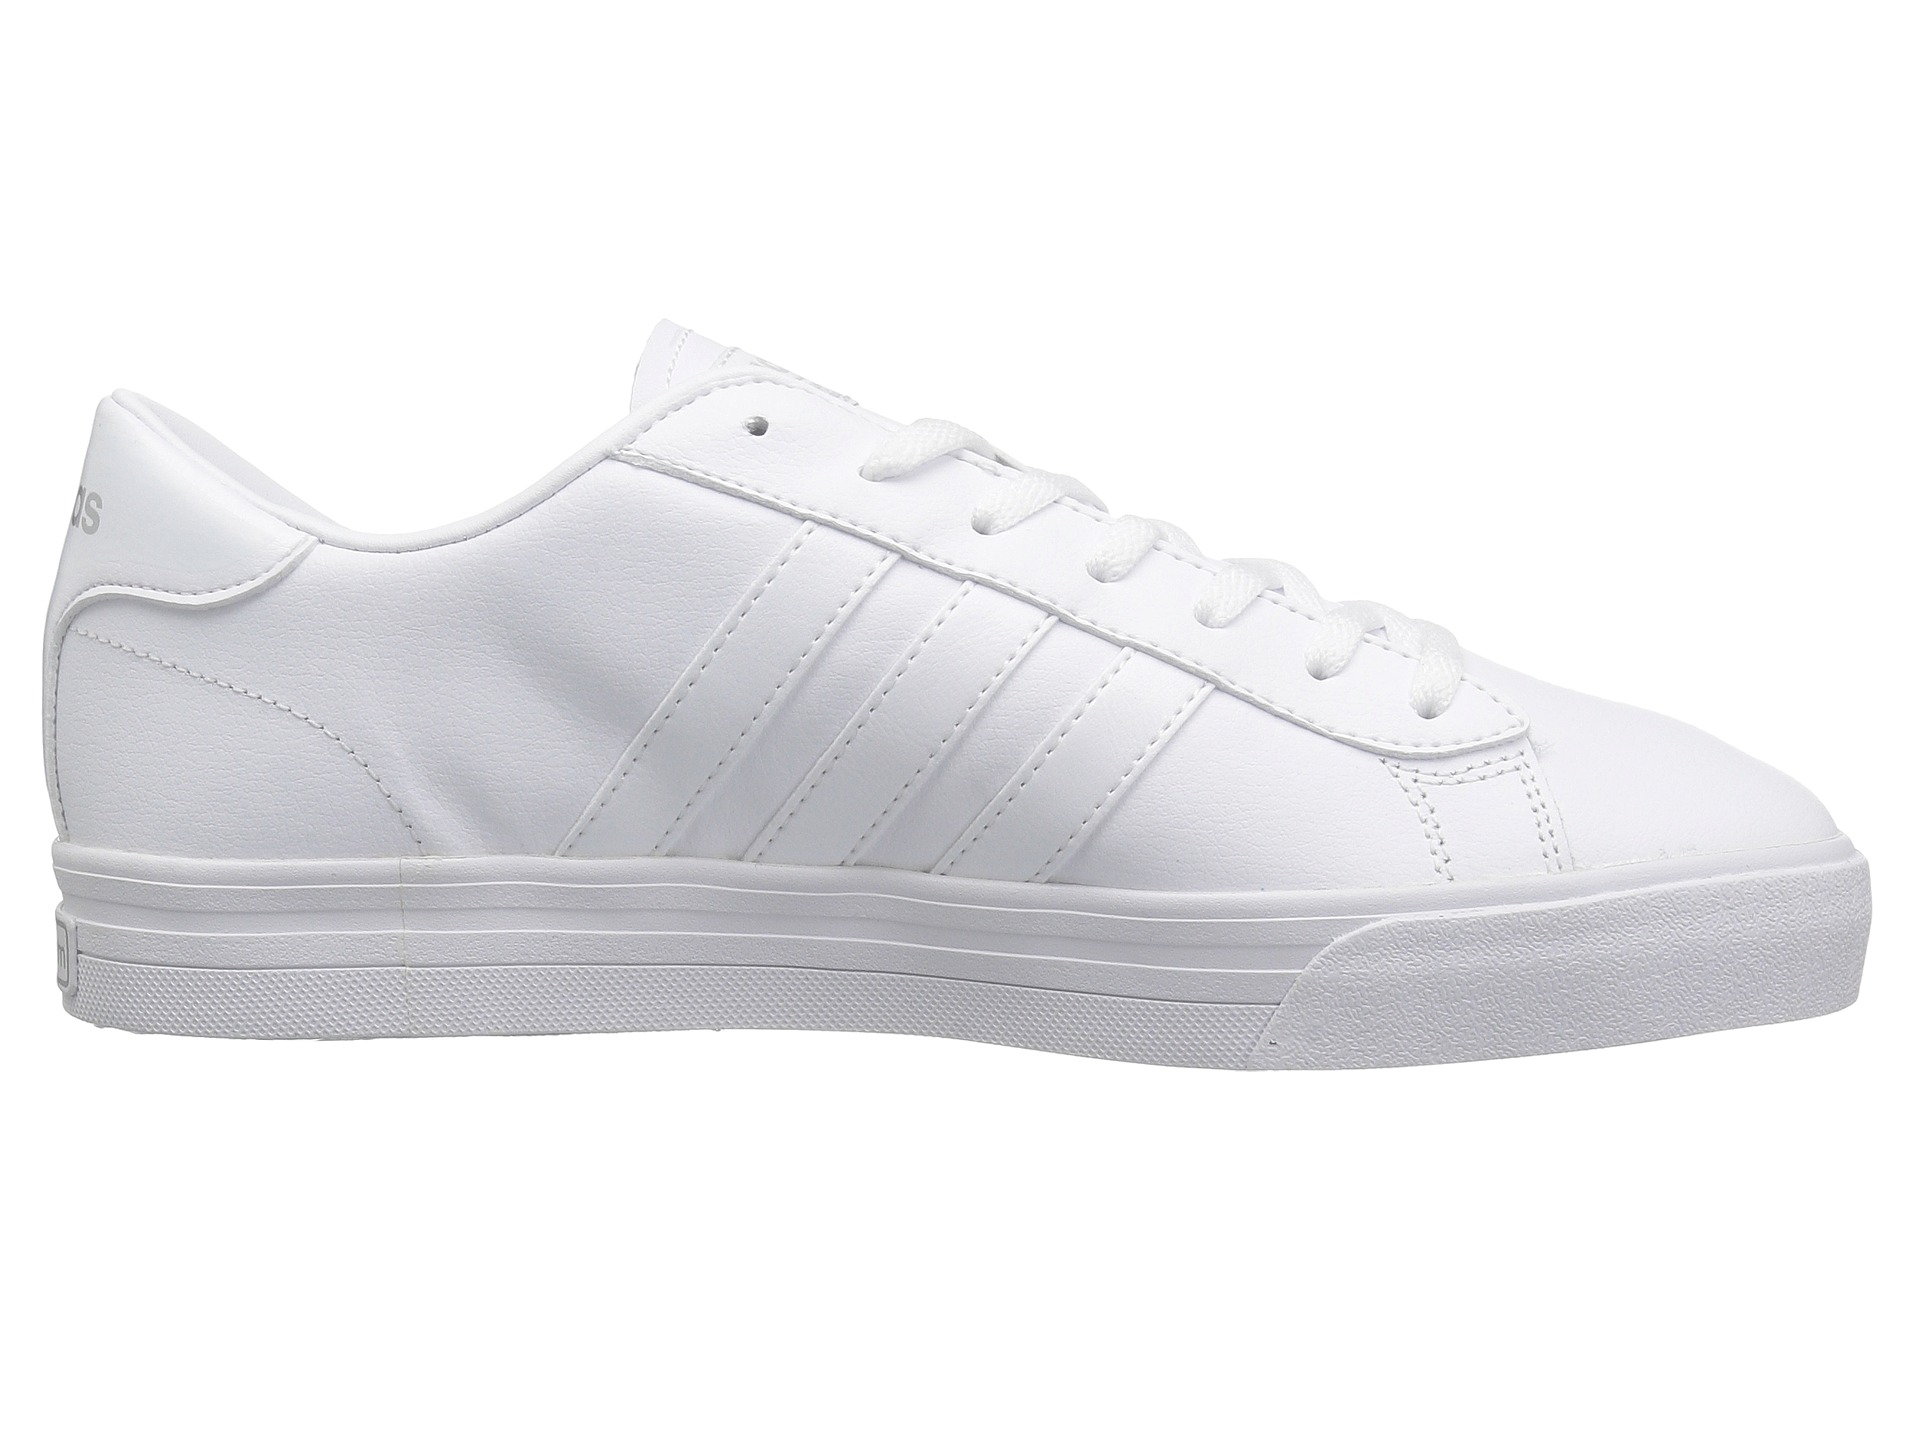 adidas Cloudfoam Super Daily Leather at 6pm.com